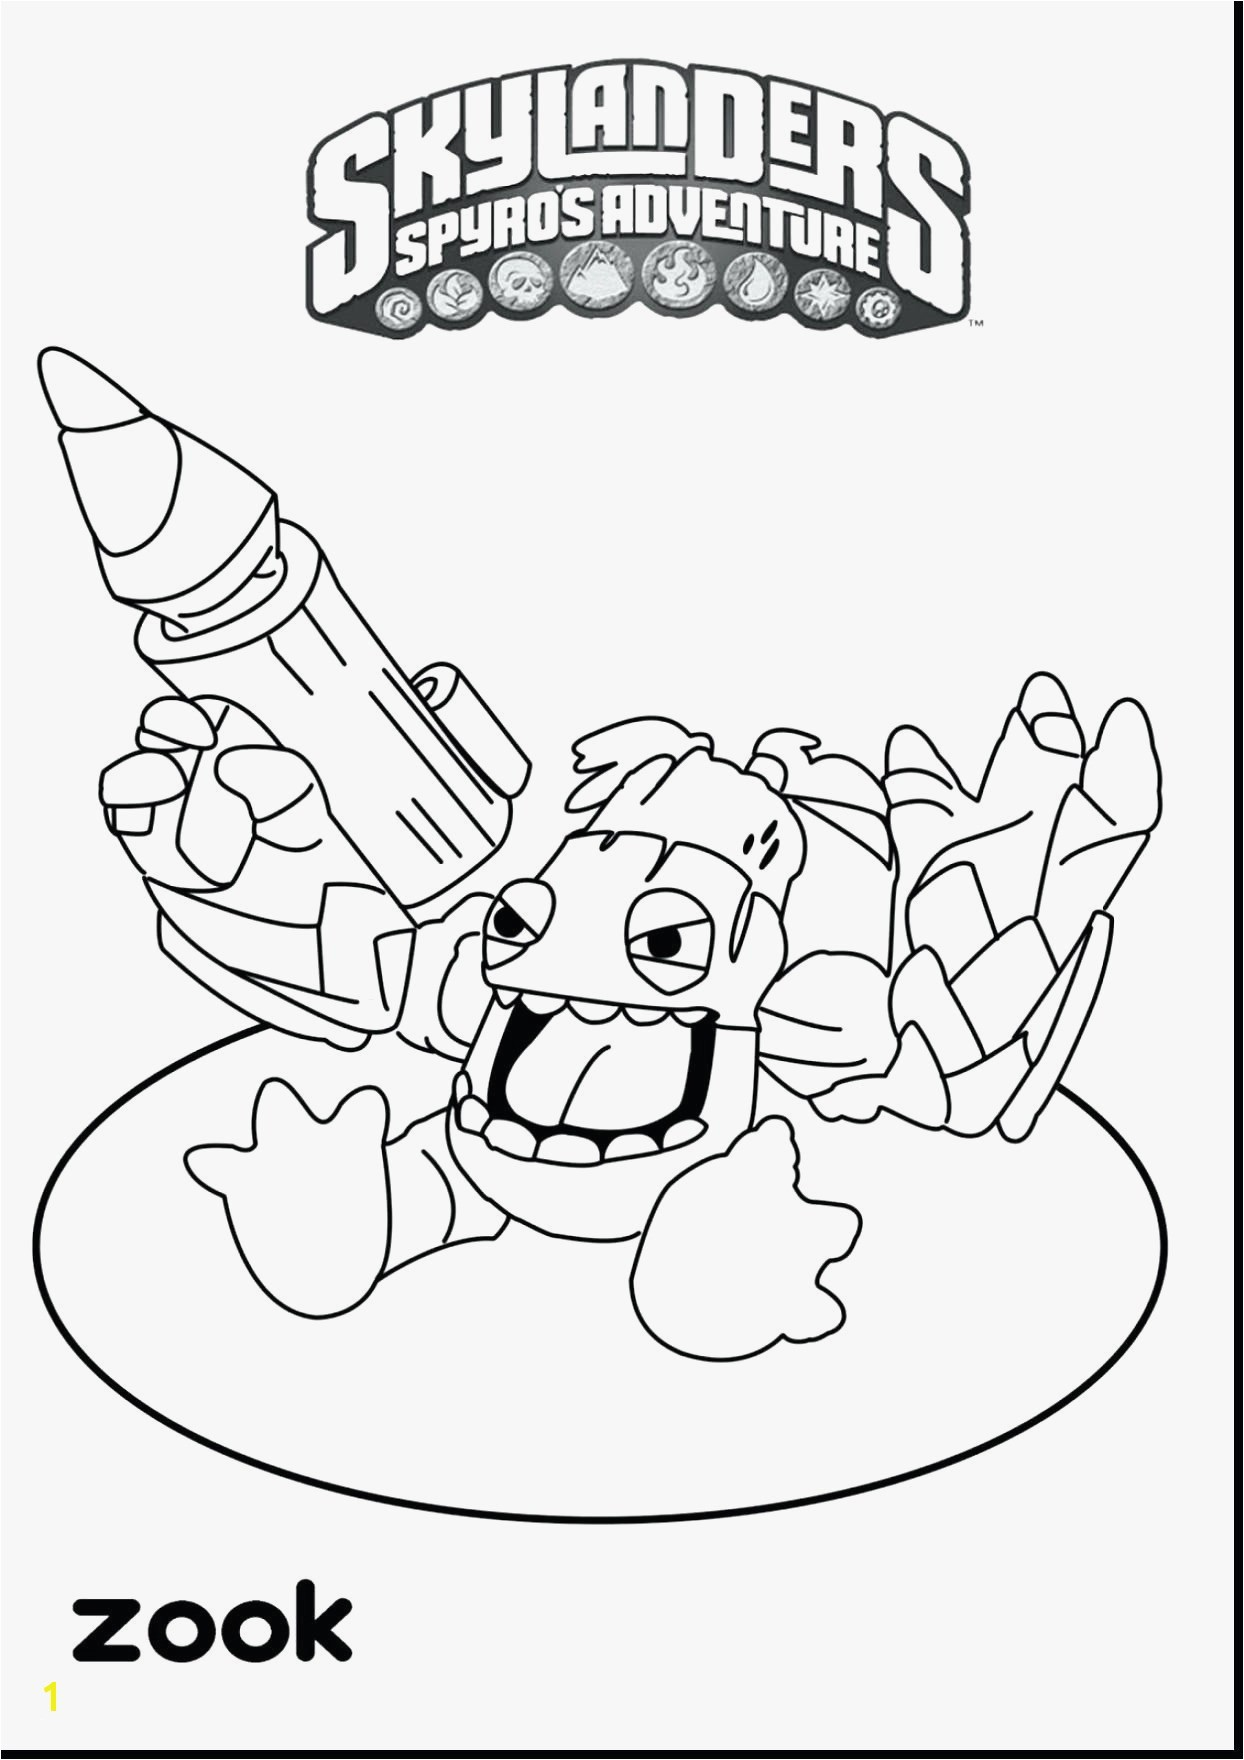 colering inspirational witch coloring pages new crayola pages 0d coloring page